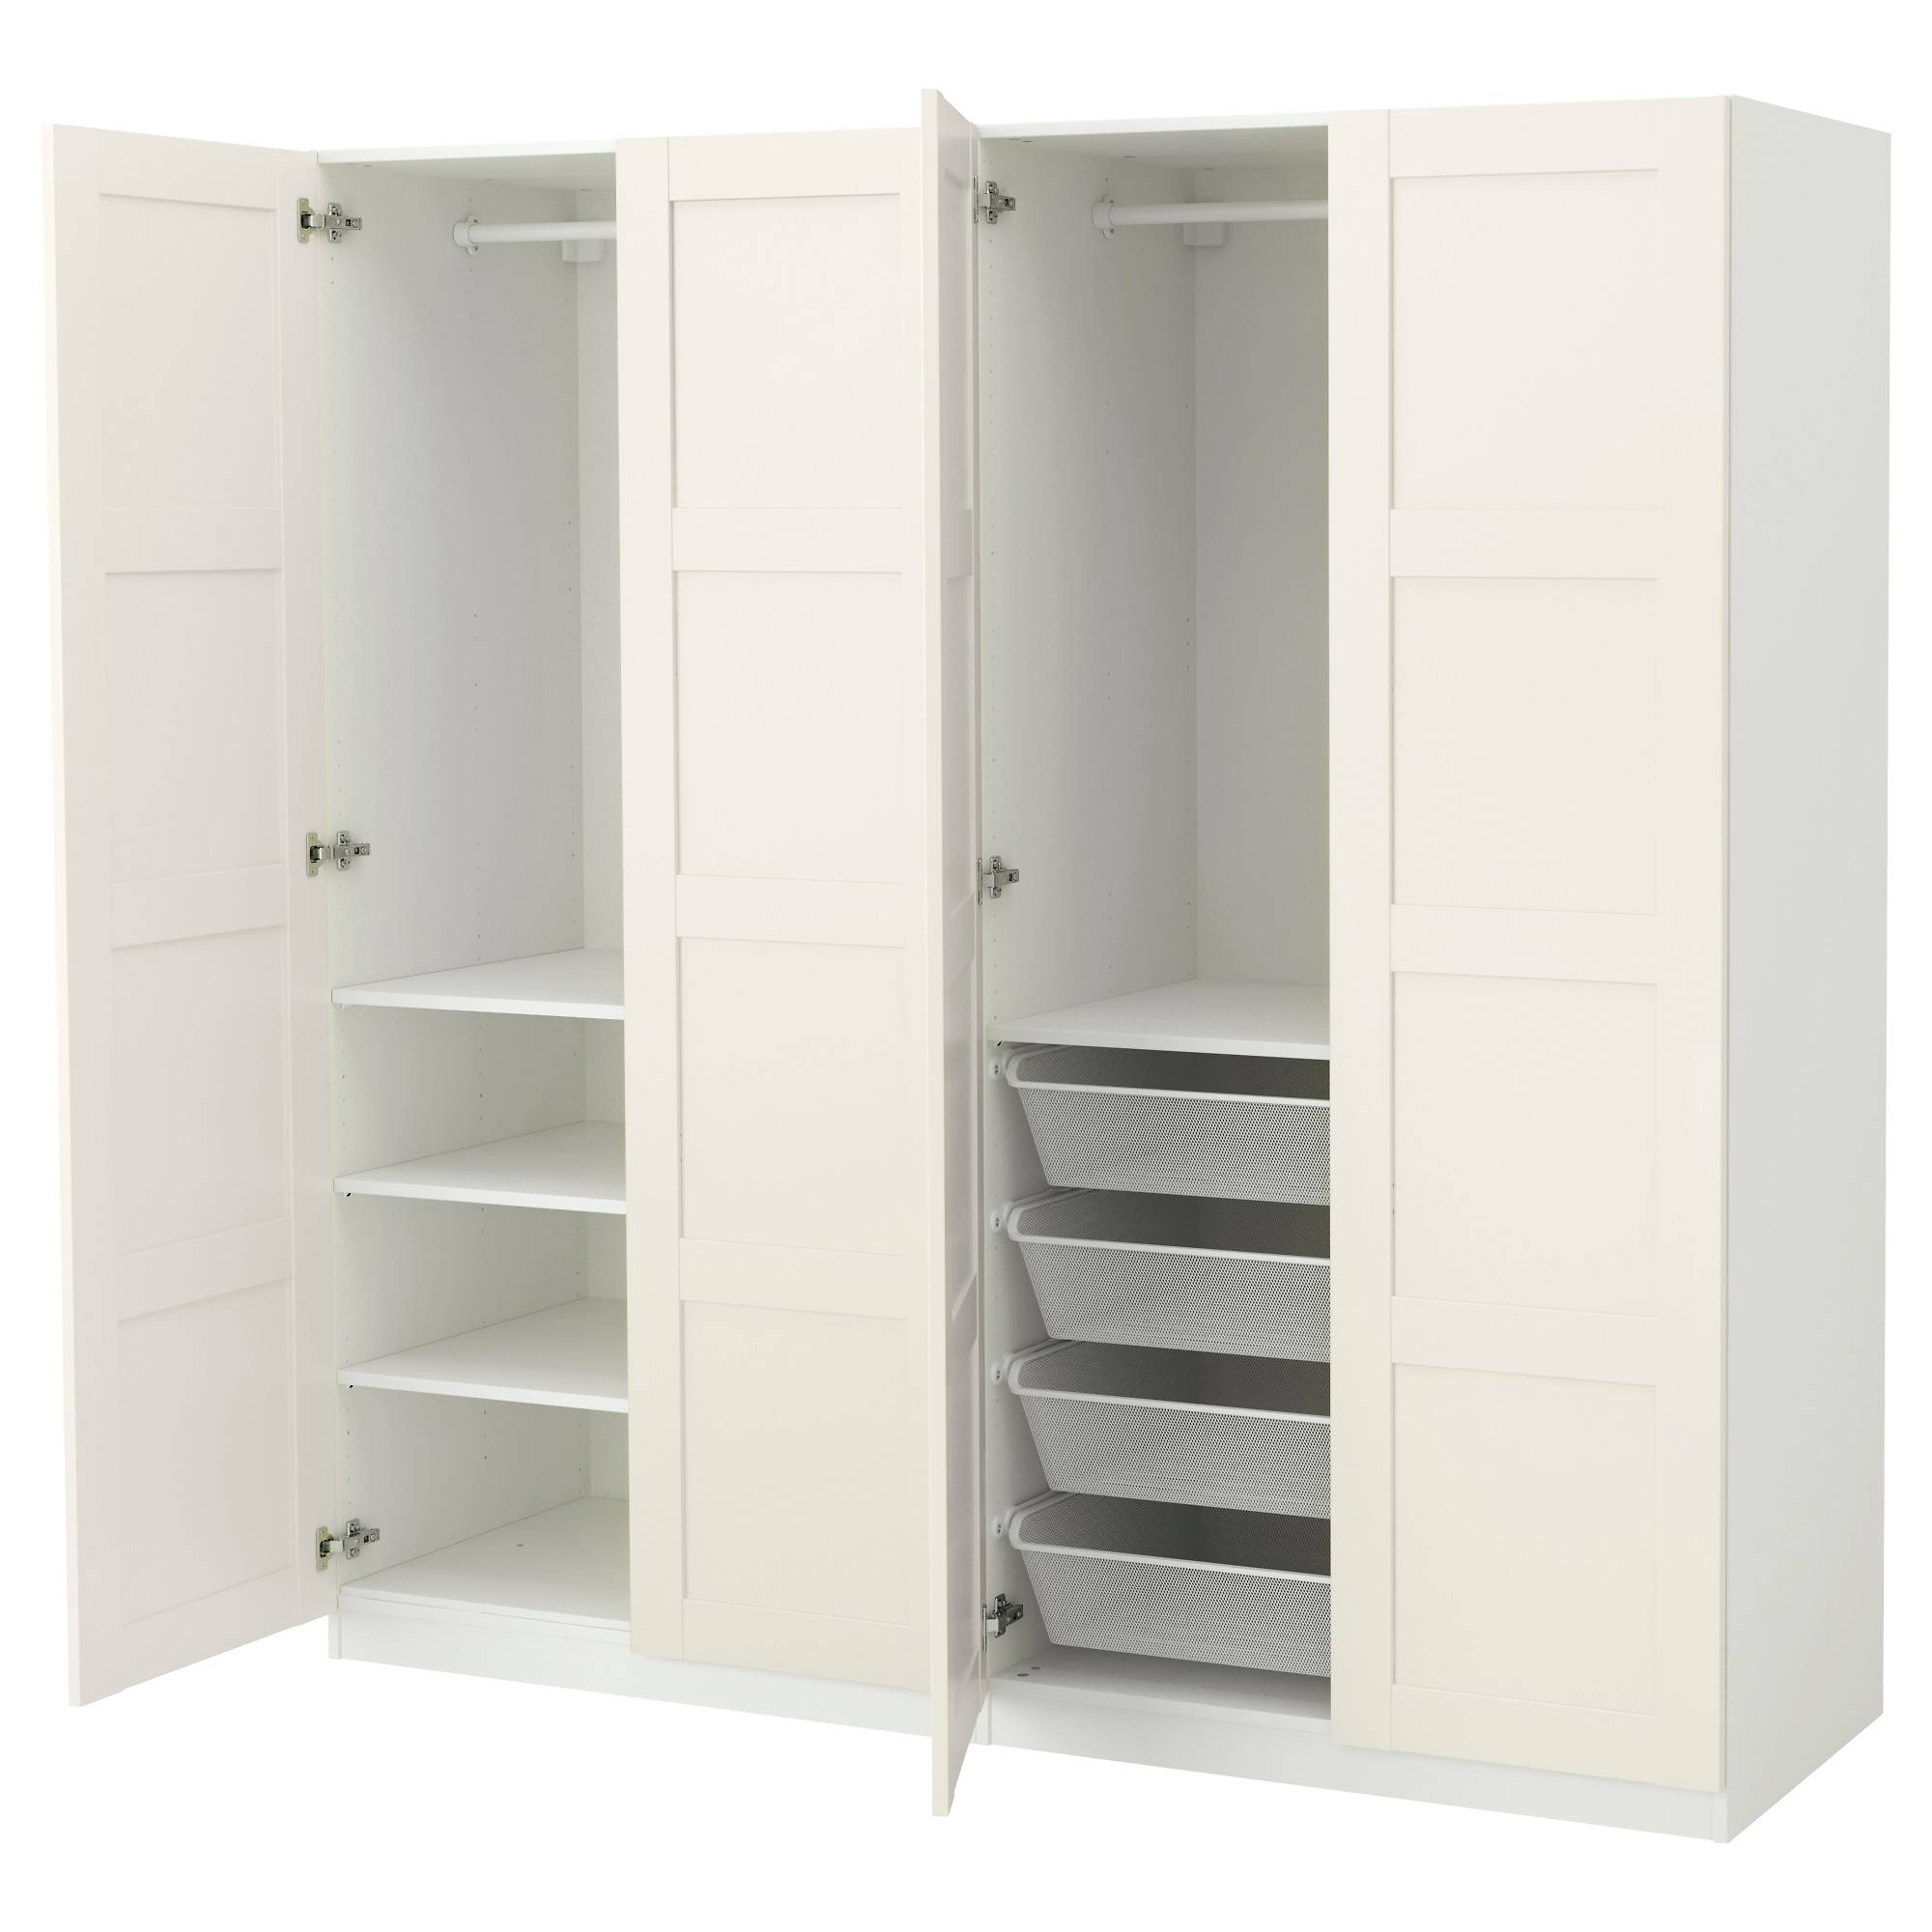 Wardrobes - Pax System - Ikea throughout Wardrobe Drawers and Shelves Ikea (Image 25 of 30)